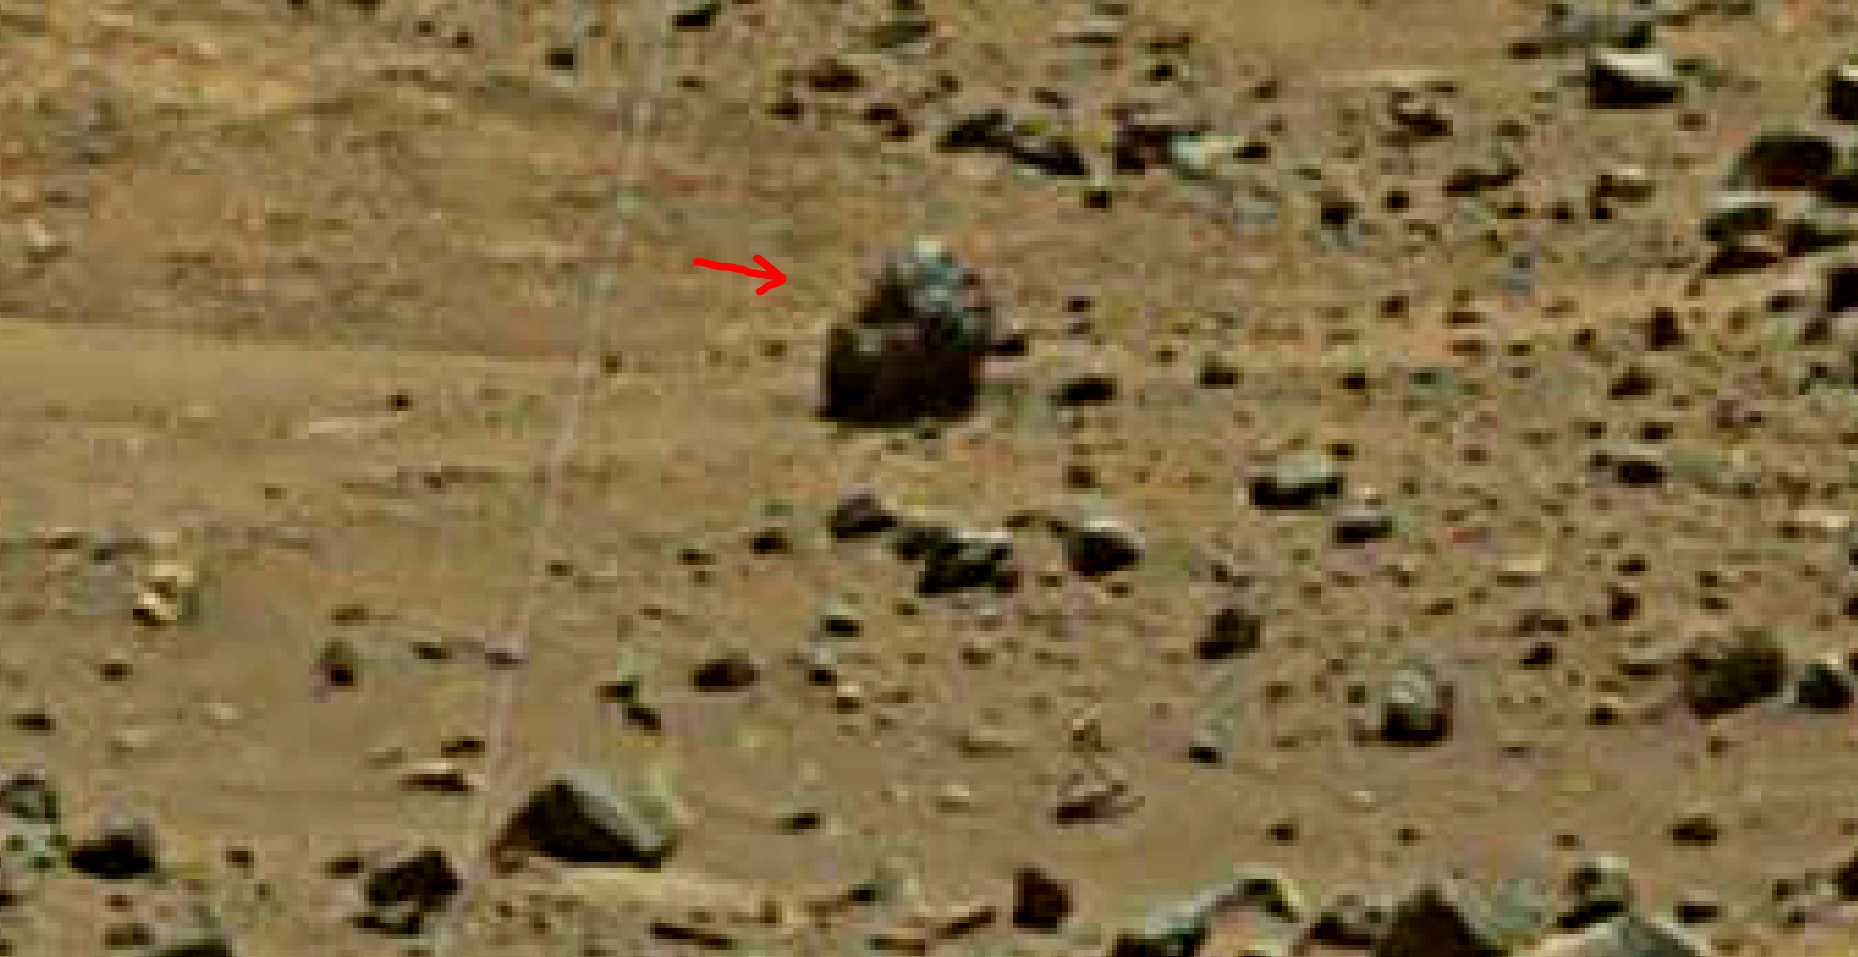 mars sol 1401 anomaly artifacts 10 was life on mars